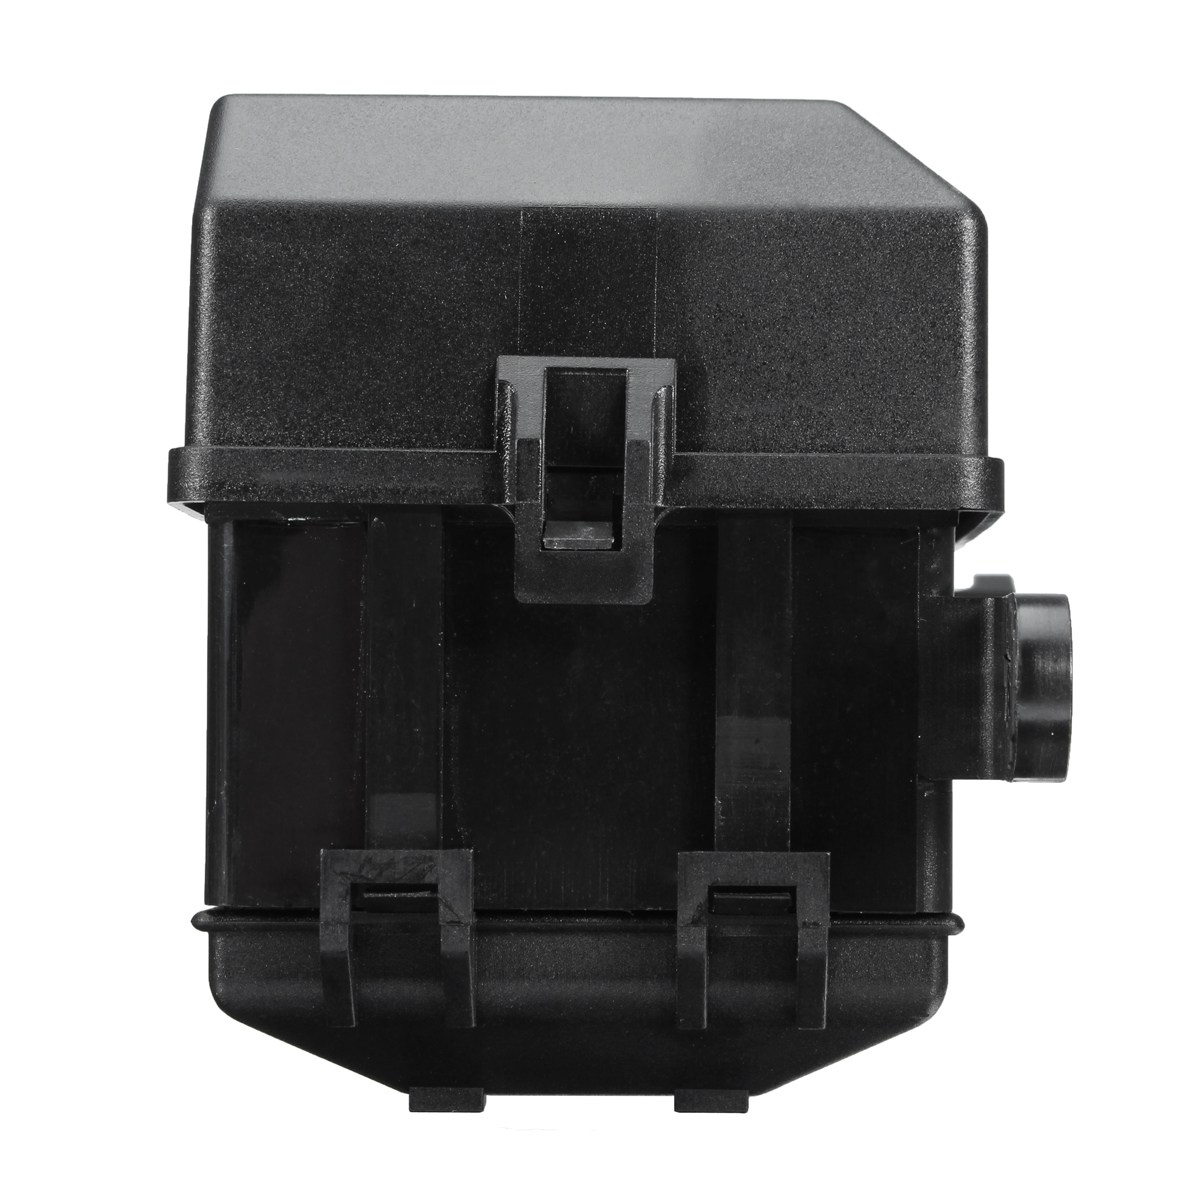 Auto Car Fuse Relay Box Socket Holder 6 Atc Ato Fuses And Universal In Switches Relays From Automobiles Motorcycles On